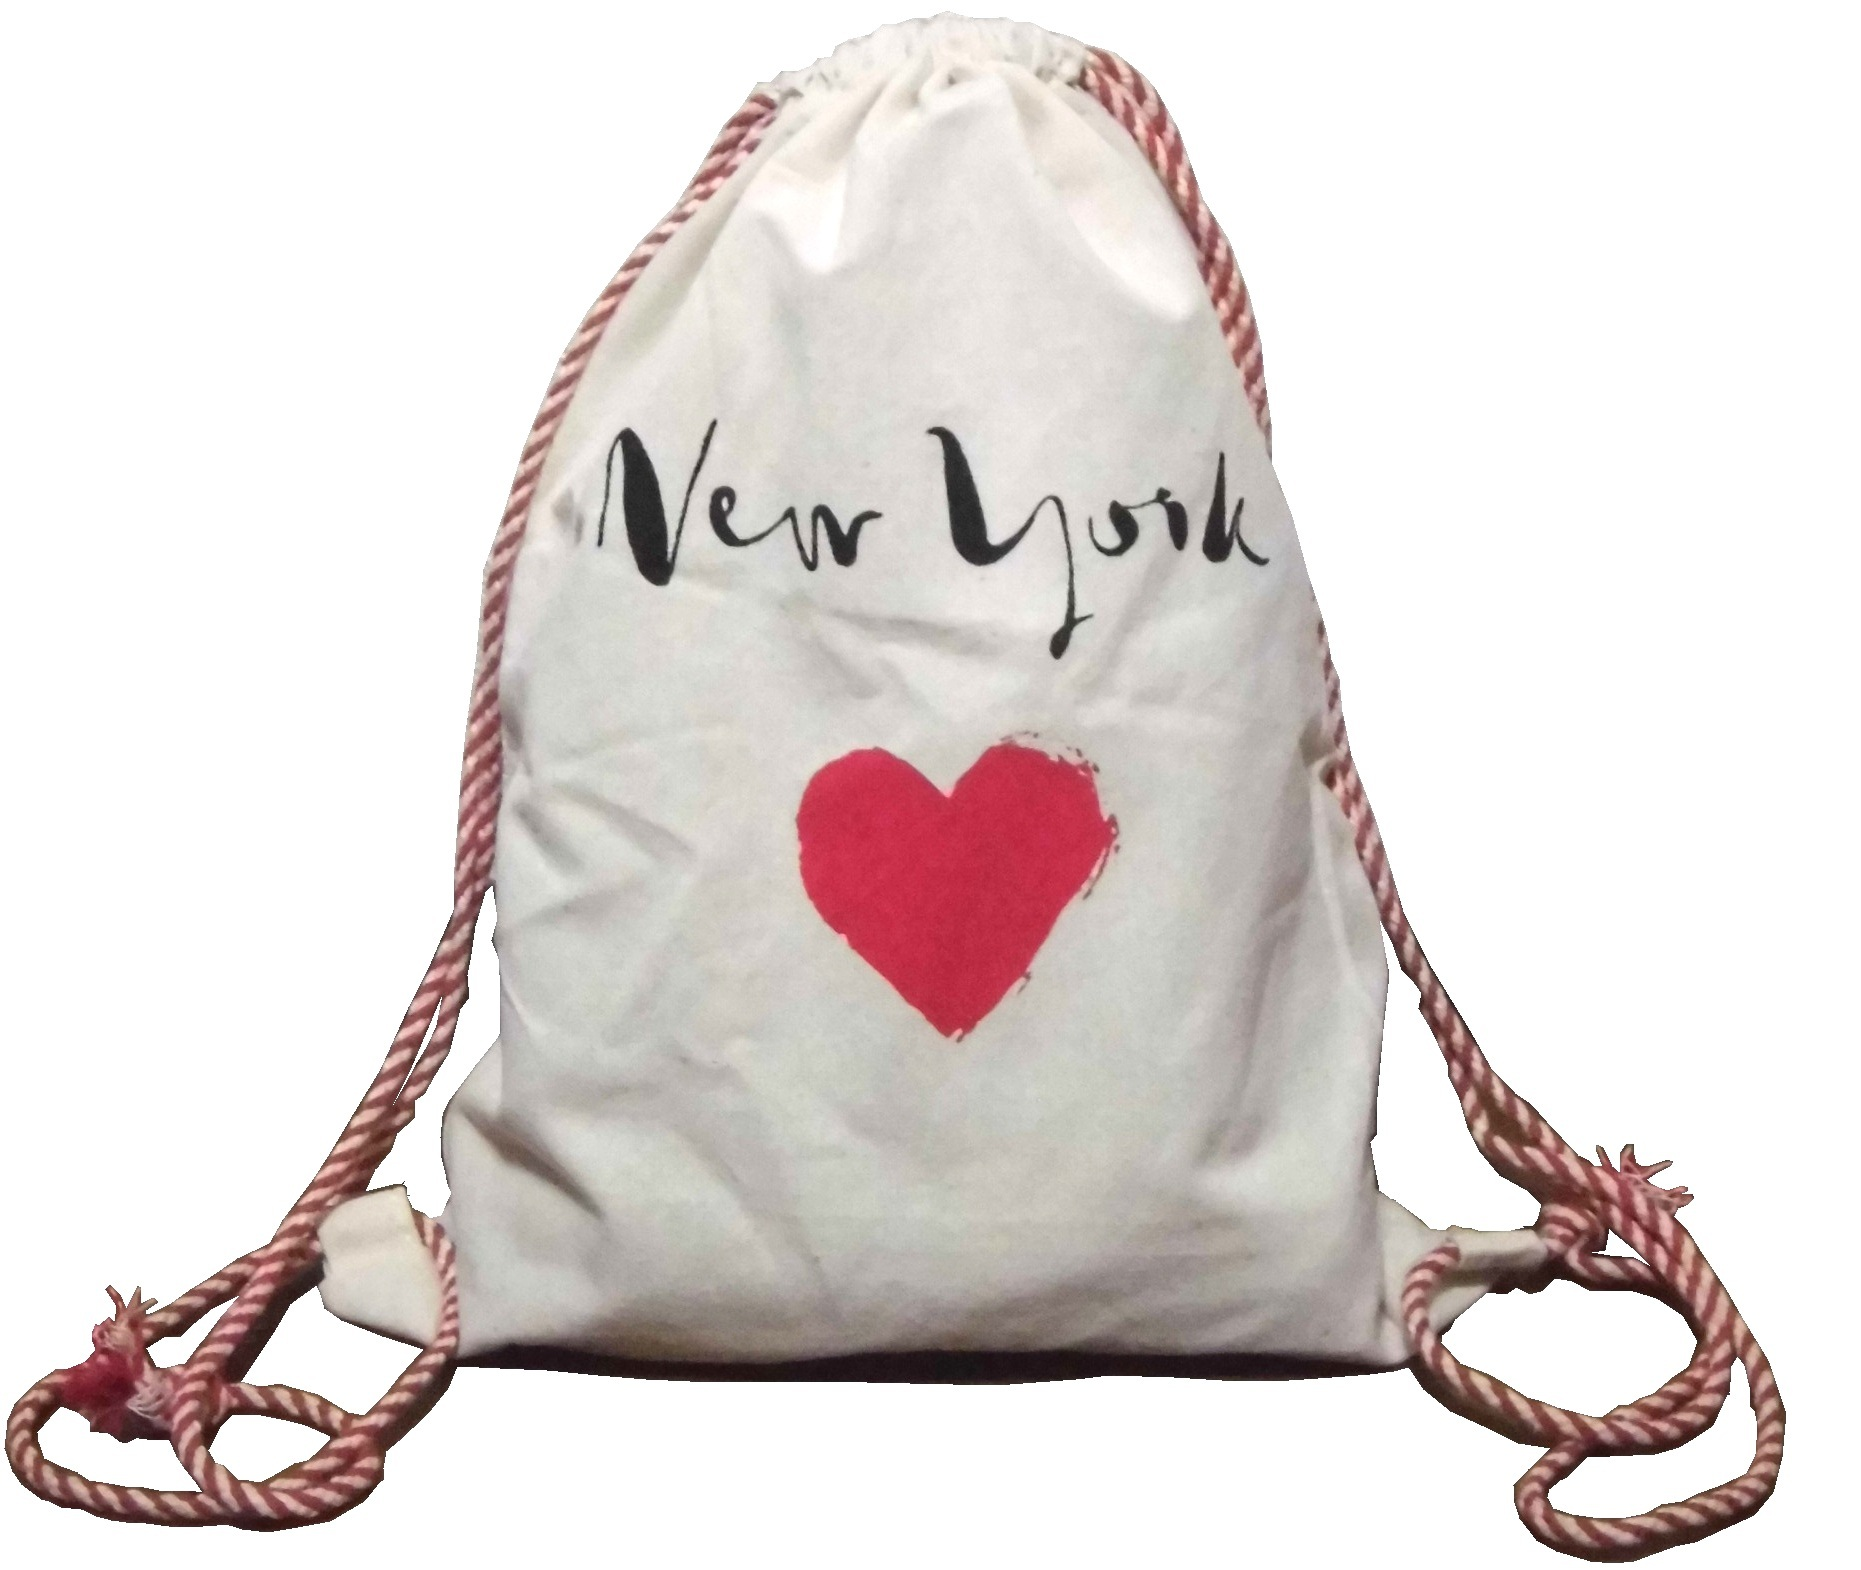 NEW YORK HEART BACKPACK (5)